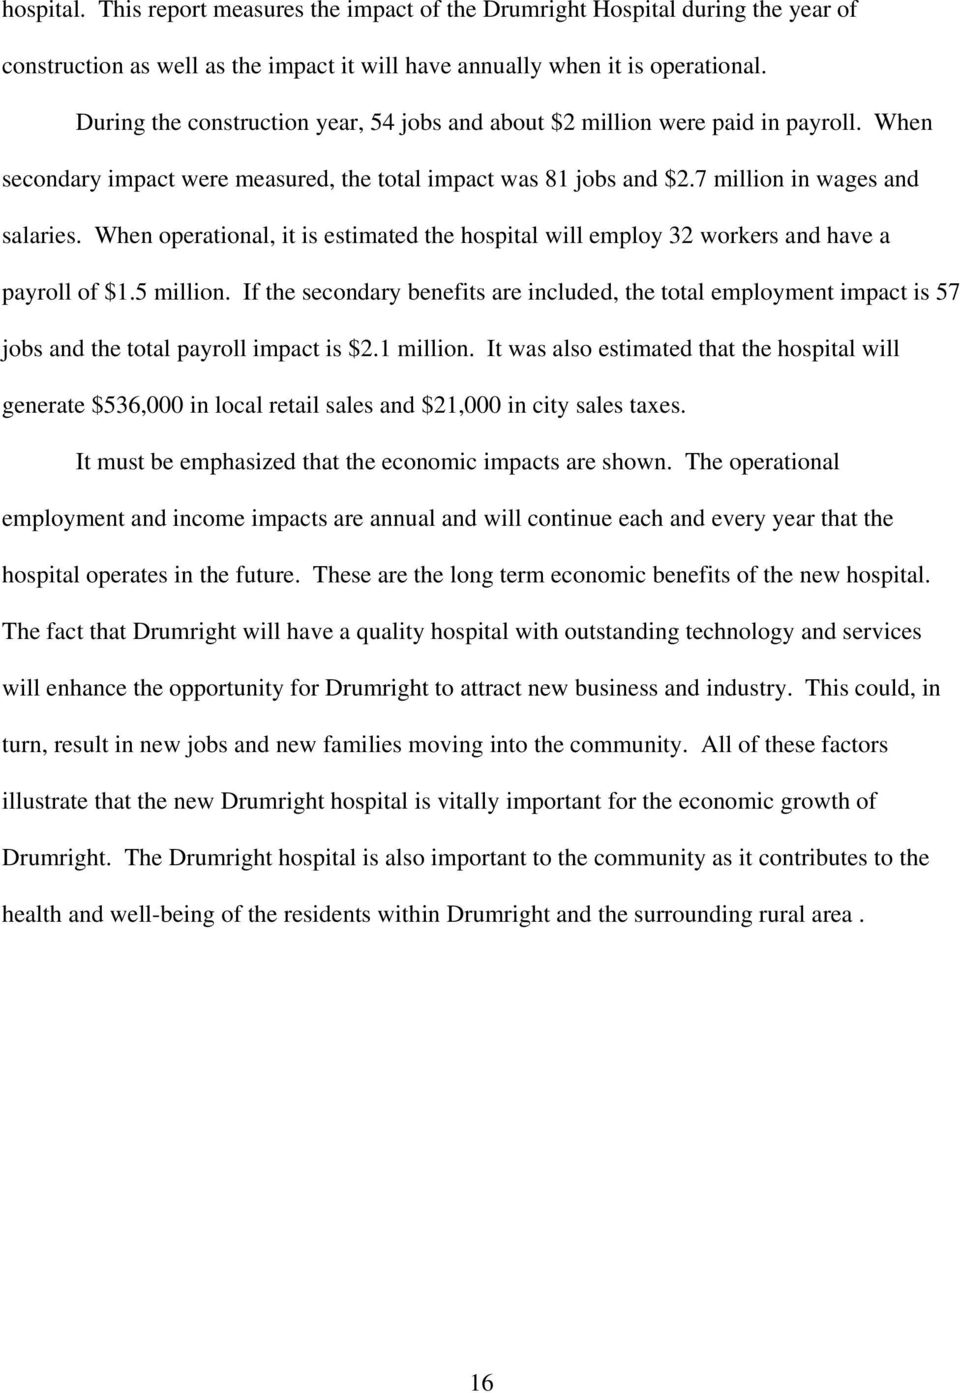 When operational, it is estimated the hospital will employ 32 workers and have a payroll of $1.5 million.